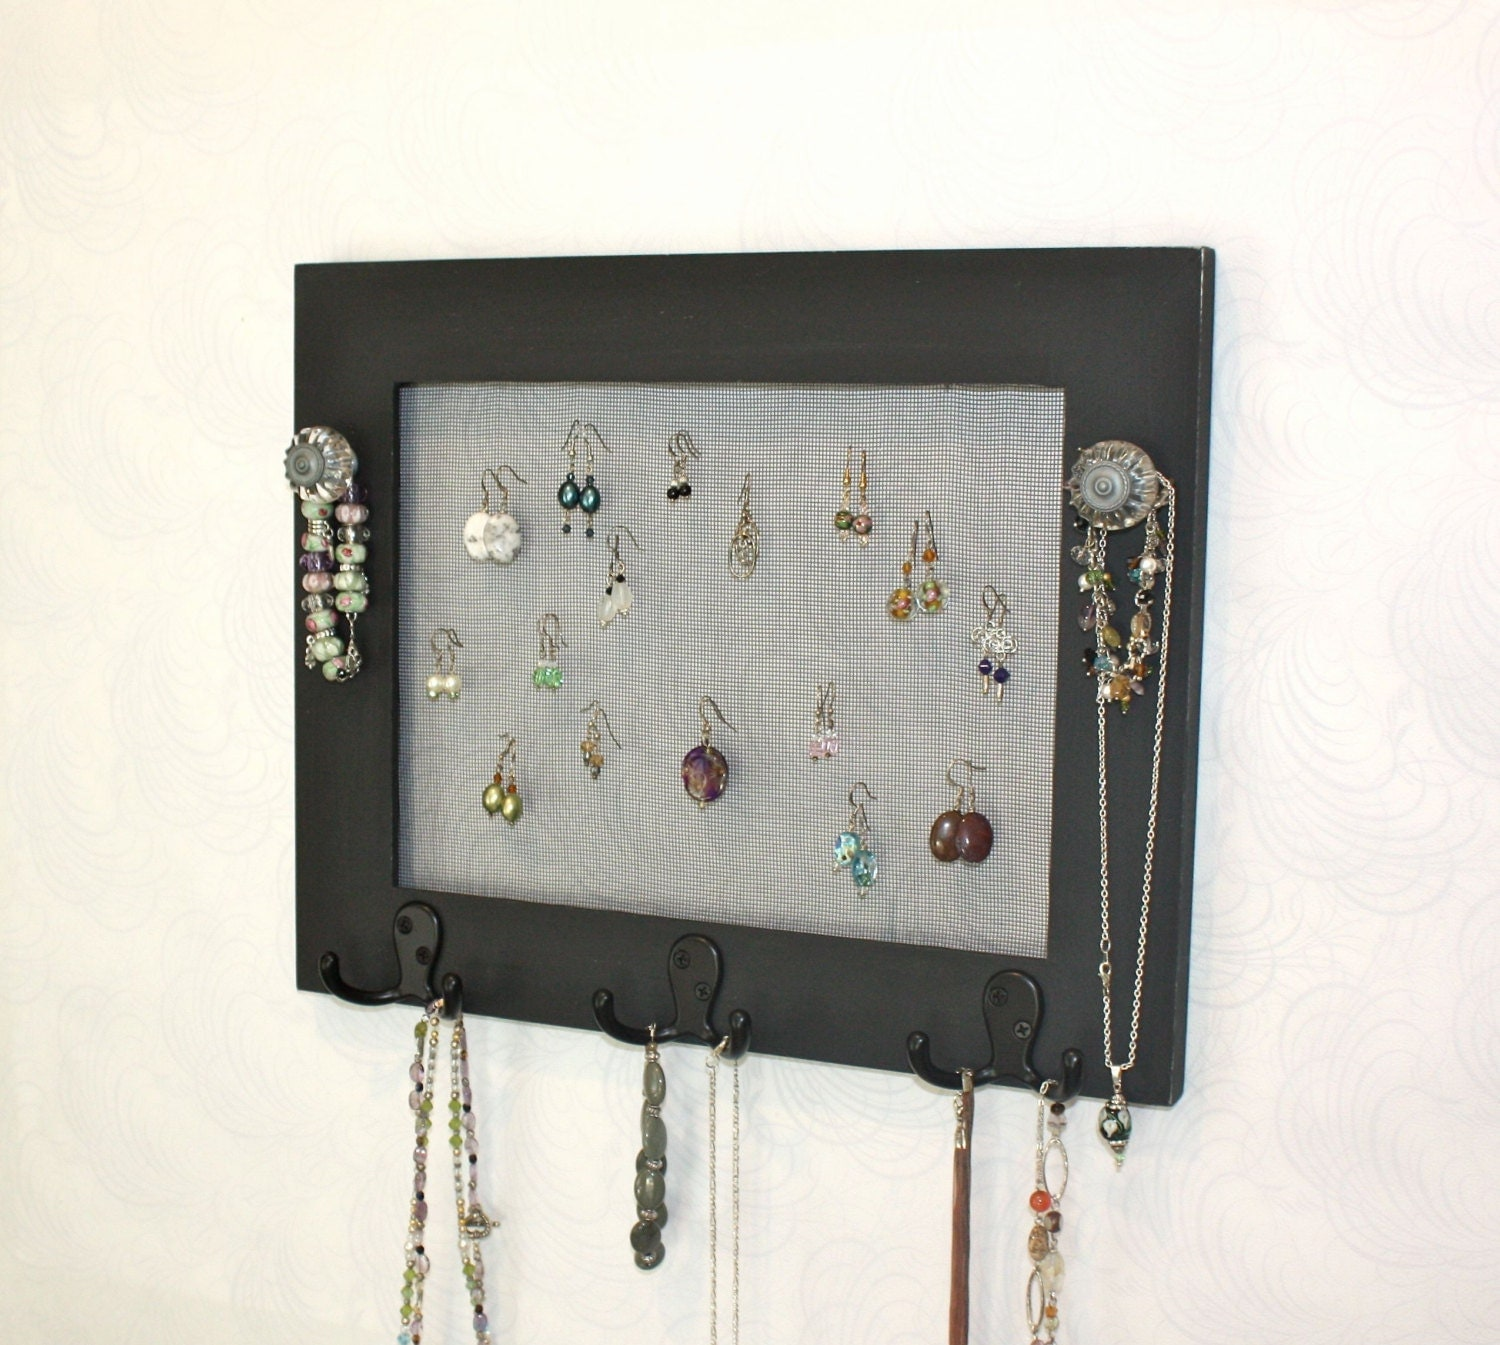 jewelry display earring organizer wall mounted by onthewallusa. Black Bedroom Furniture Sets. Home Design Ideas